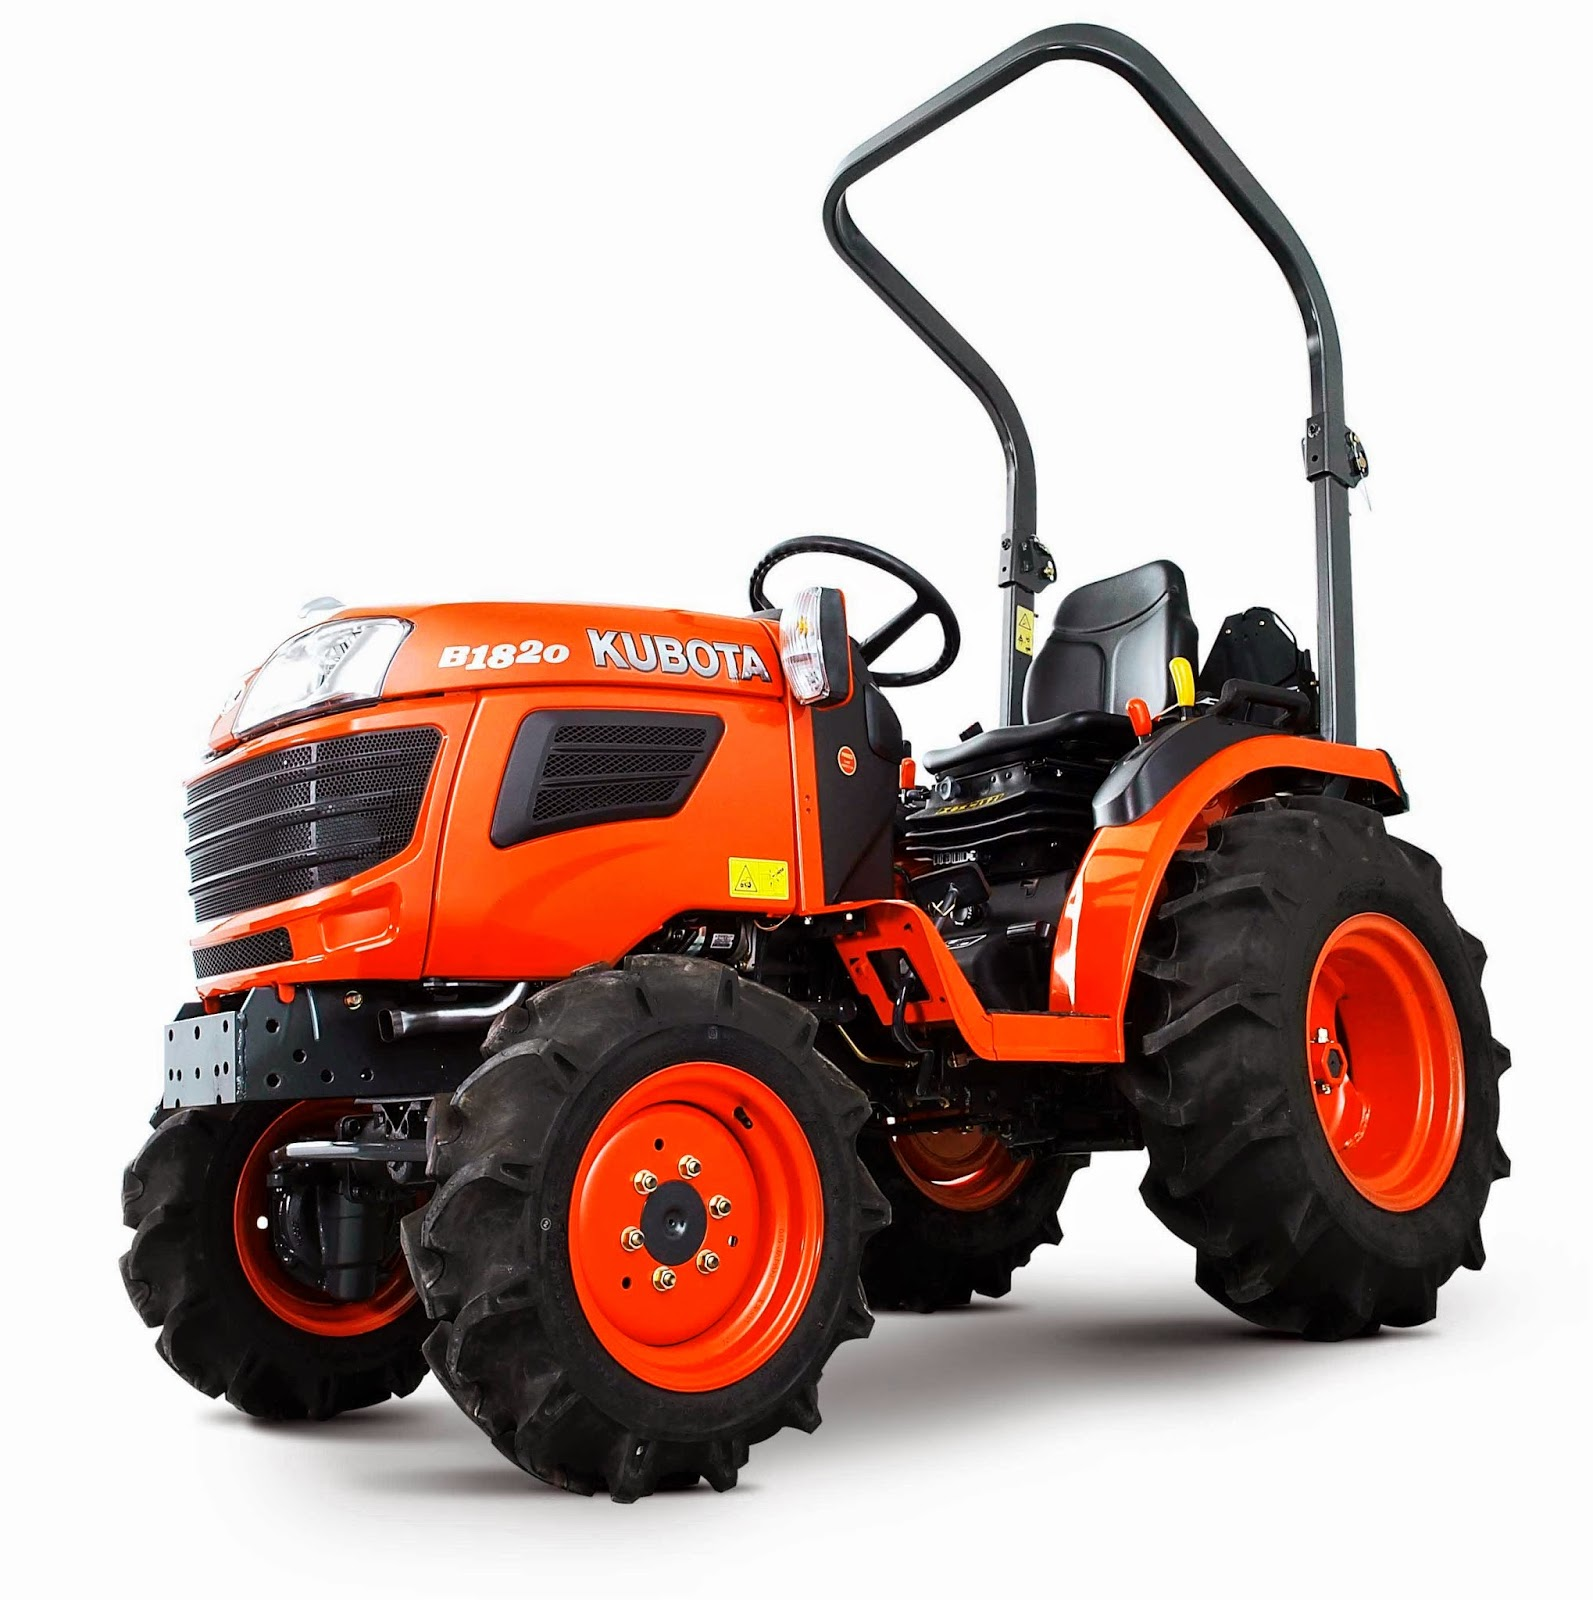 Kubota B20 Series B1620 Compact Tractor, World of Mowers